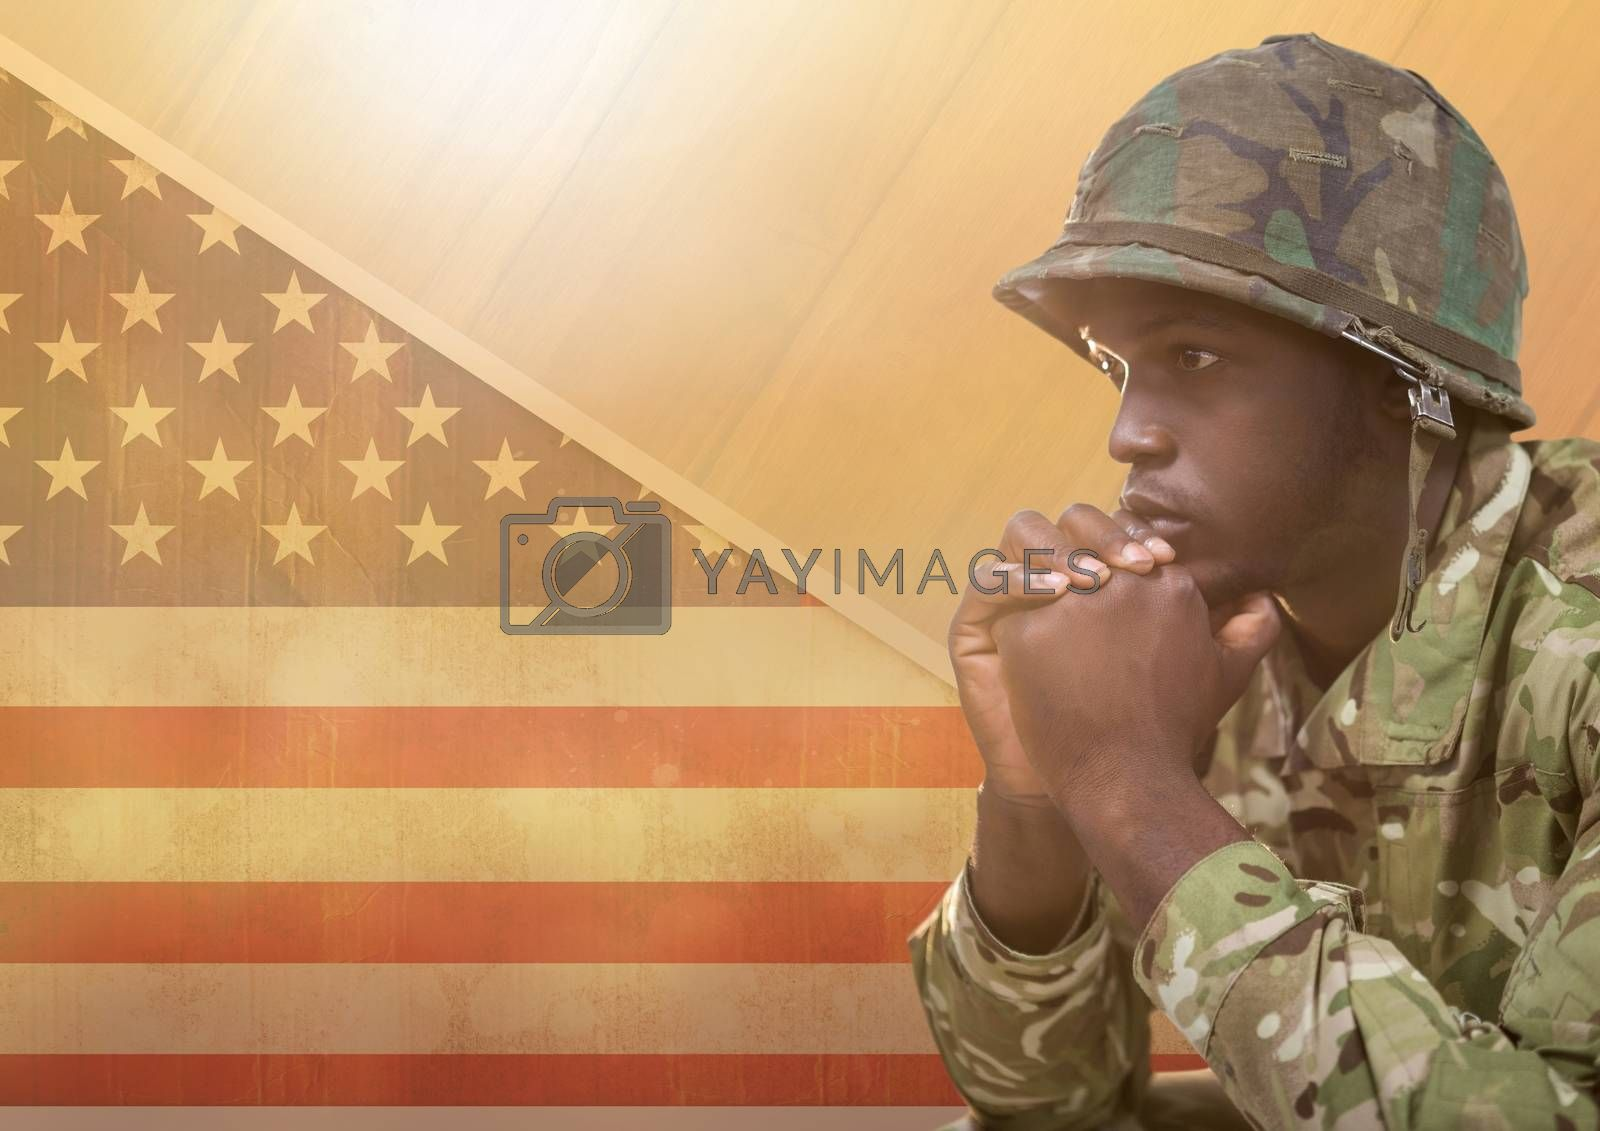 Digital composite of American Soldier thinking  against american flag